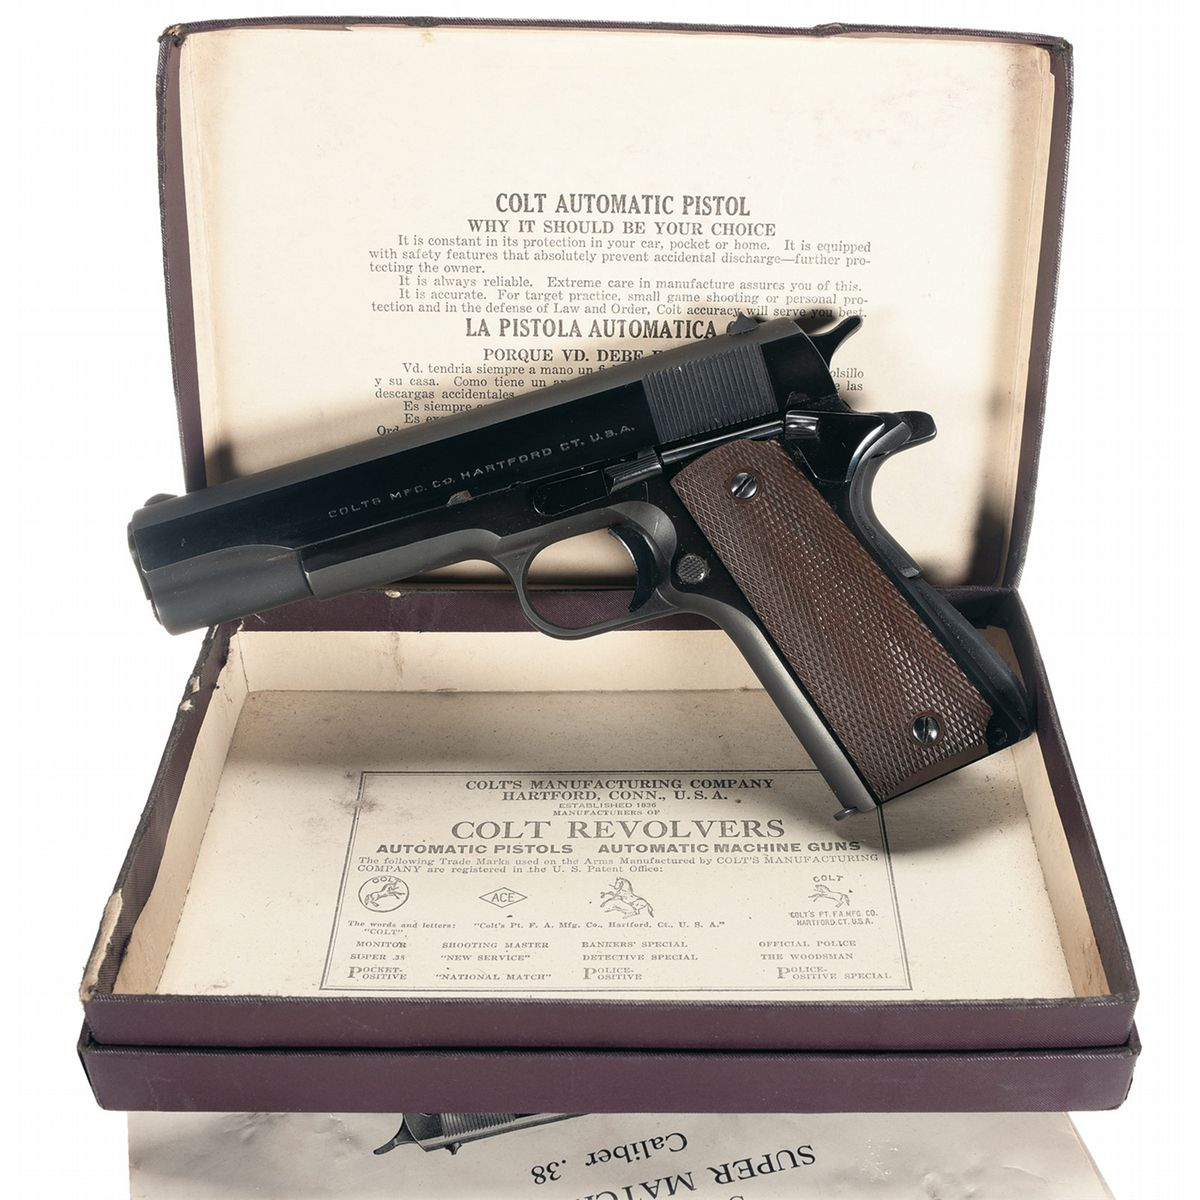 Excellent Early Post War Colt Super Model 38 Semi Automatic Pistol 1911a1 Parts Diagram With Original Box And Holster